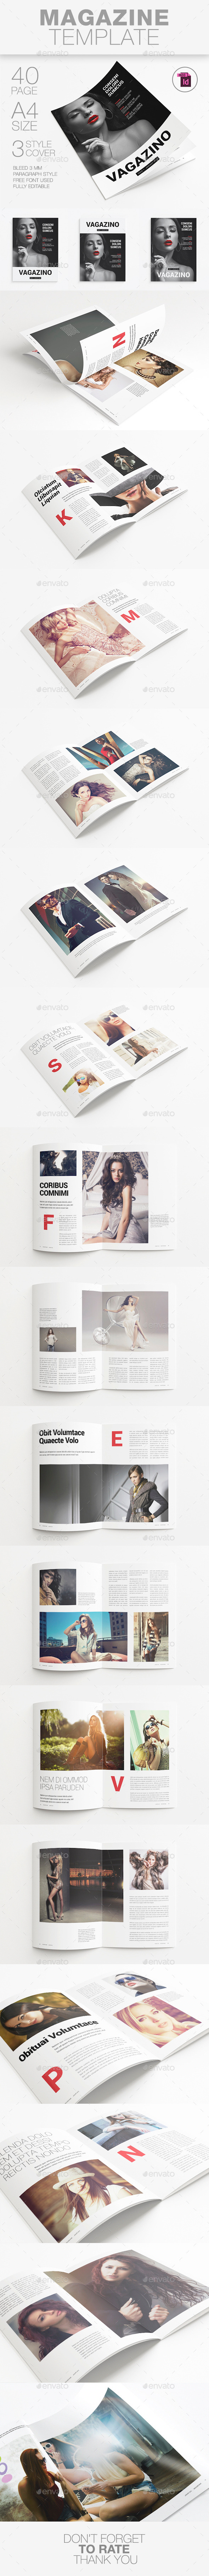 A4 Magazine Template - Magazines Print Templates